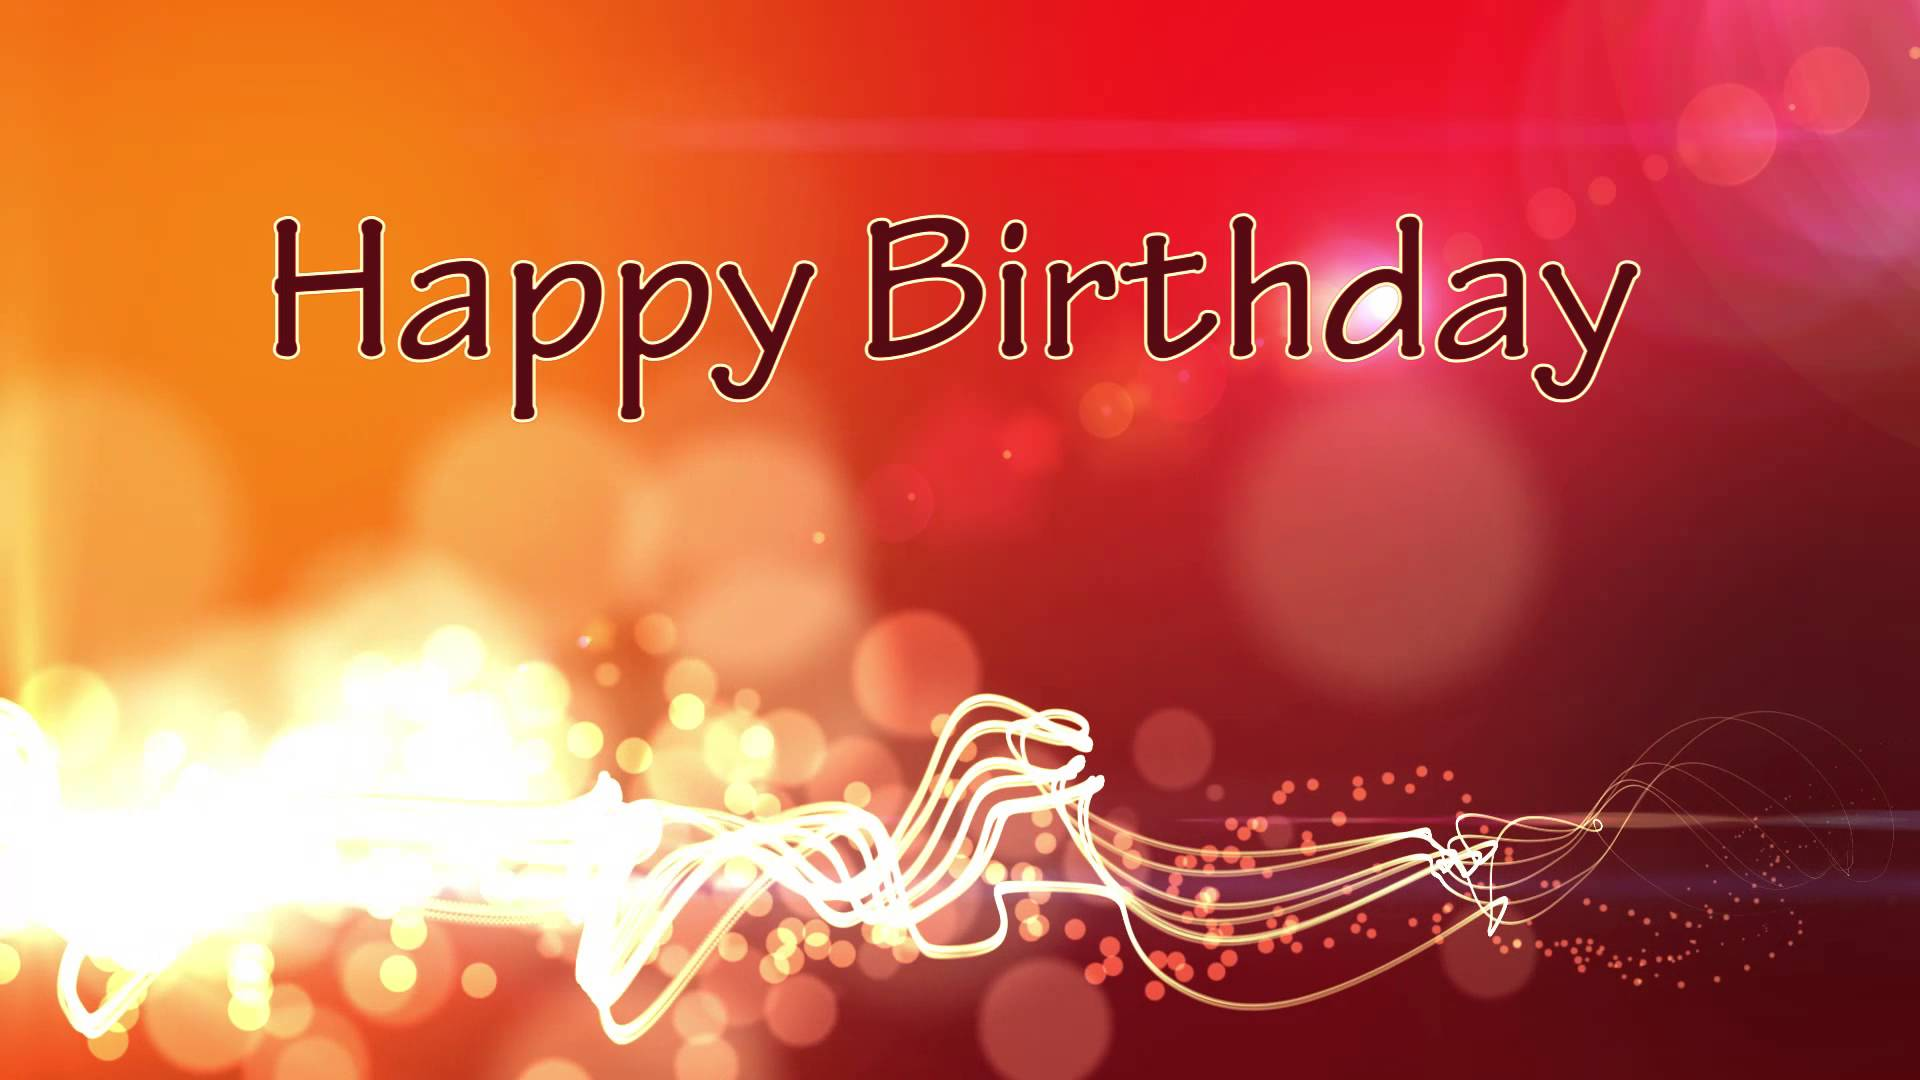 birthday background hd wallpapers ; Happy-birthday-wallpaper-HD-free-download